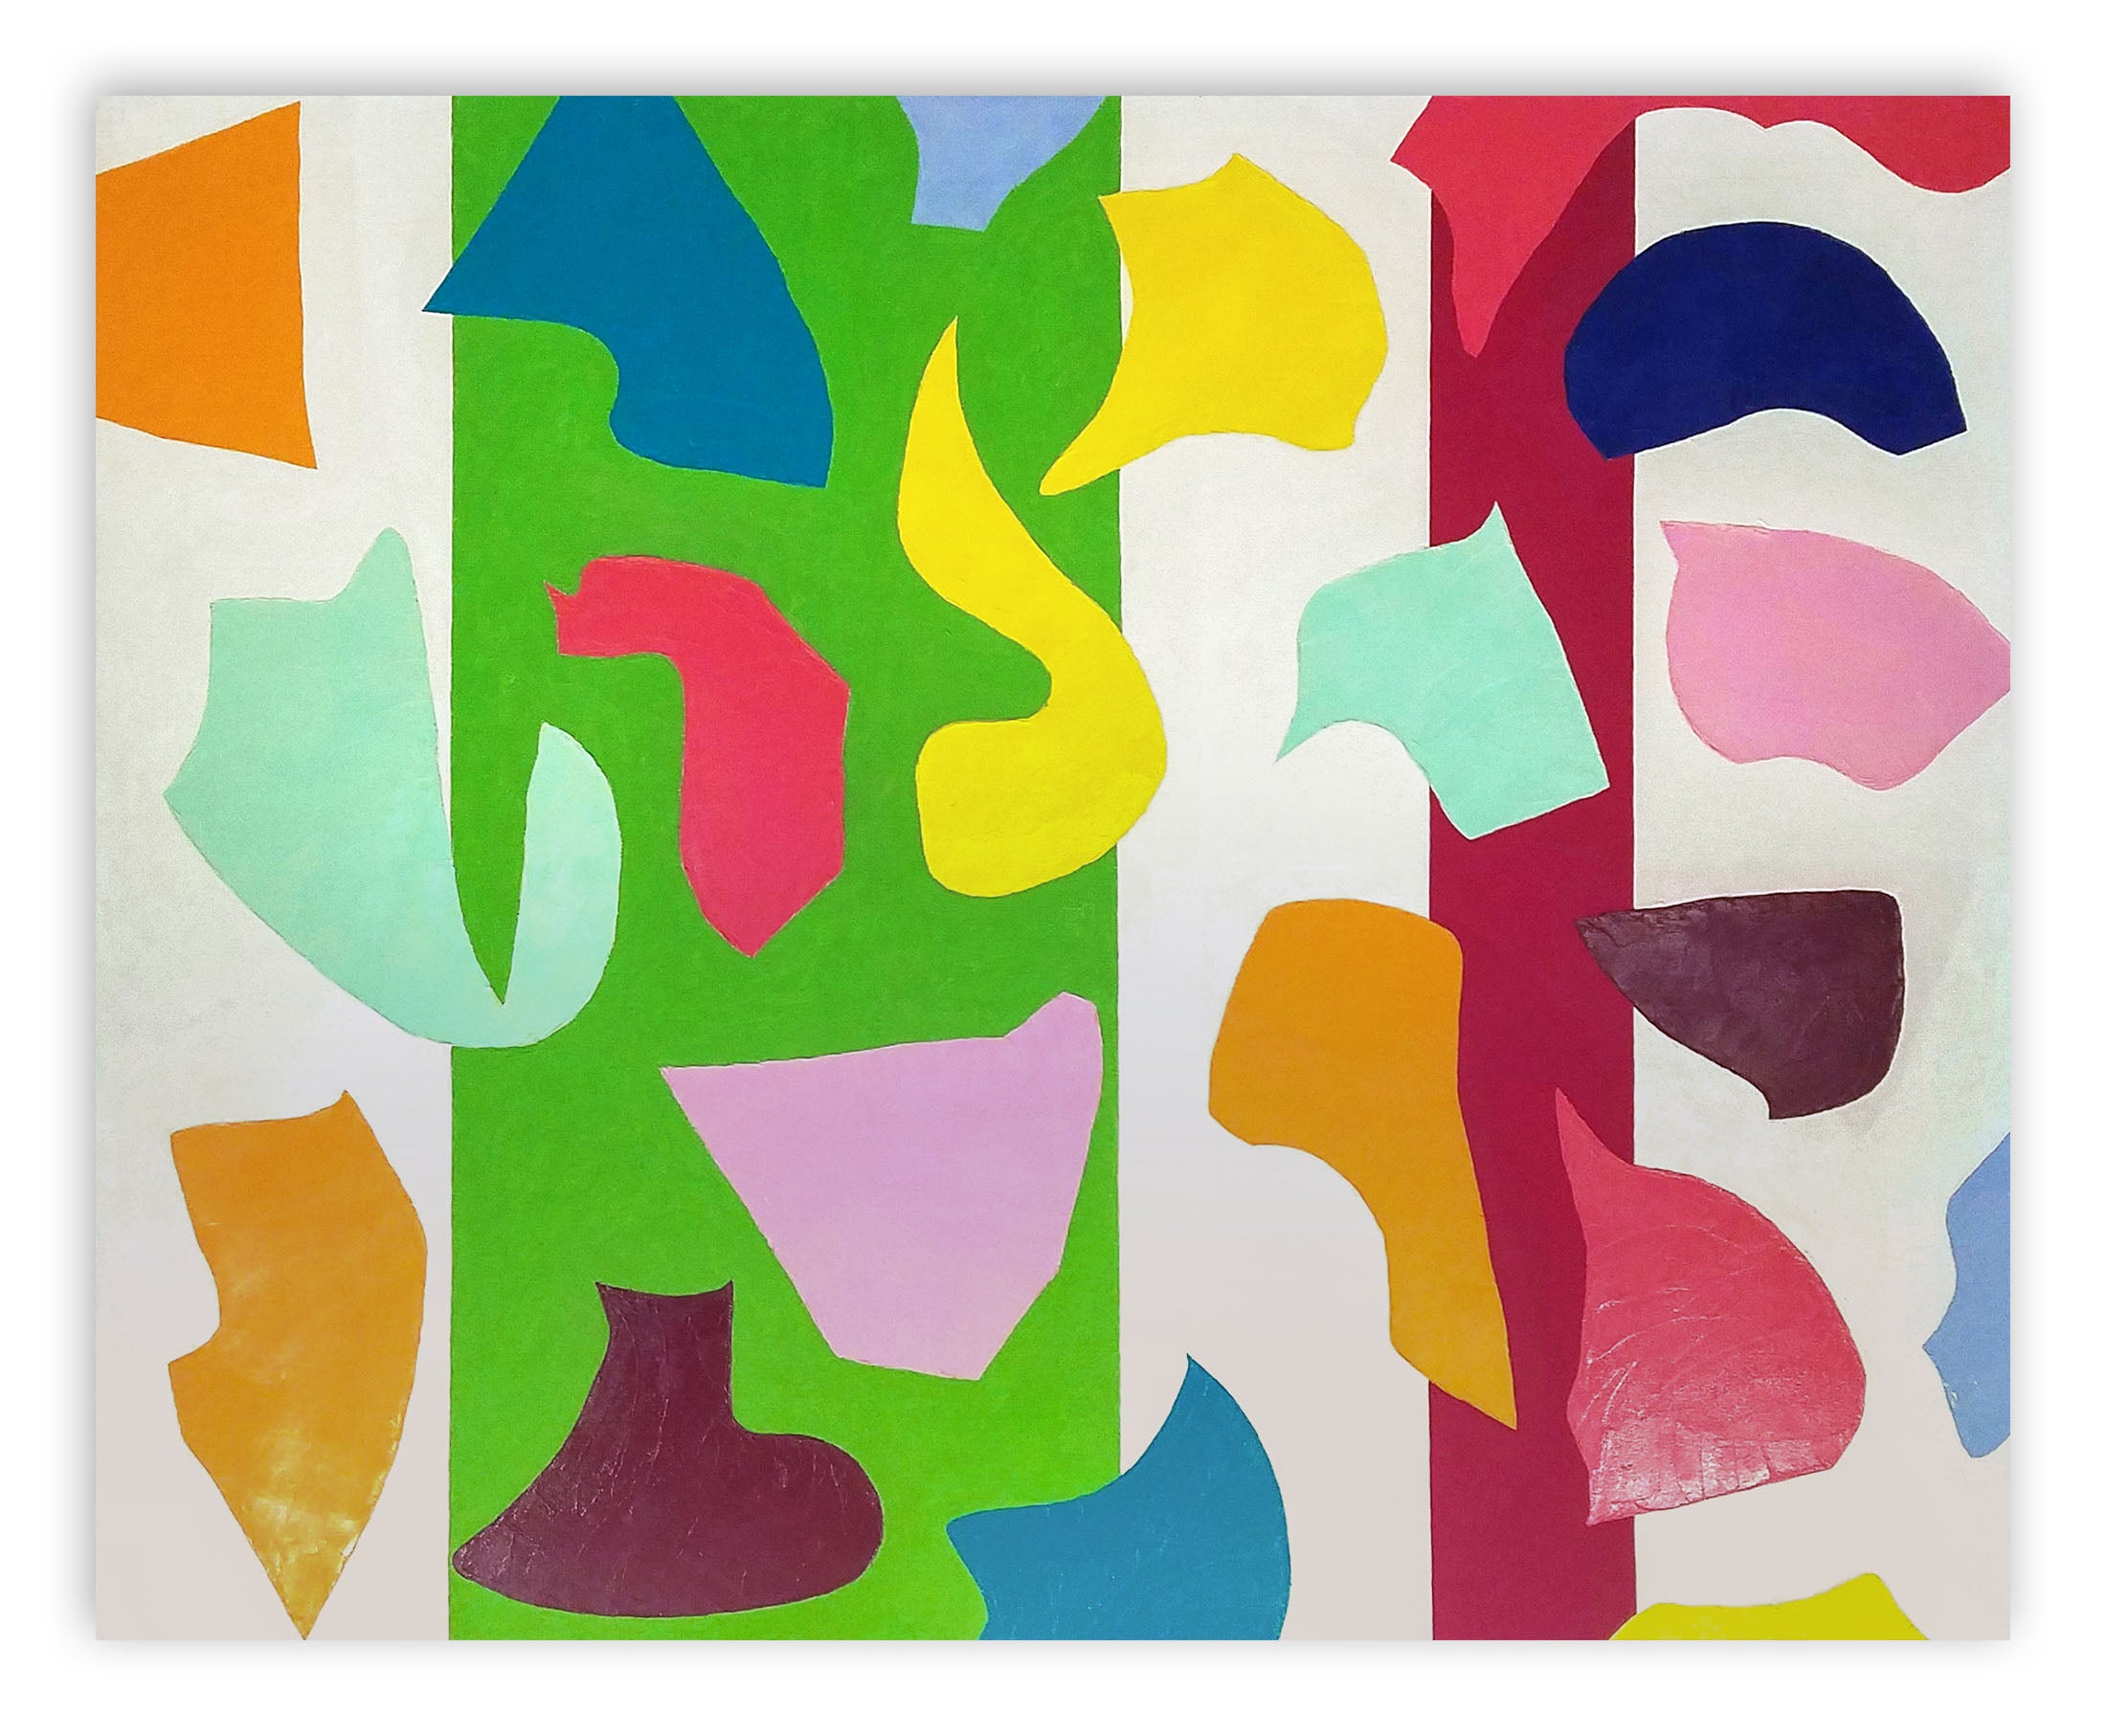 Shapely controversy (Abstract painting)